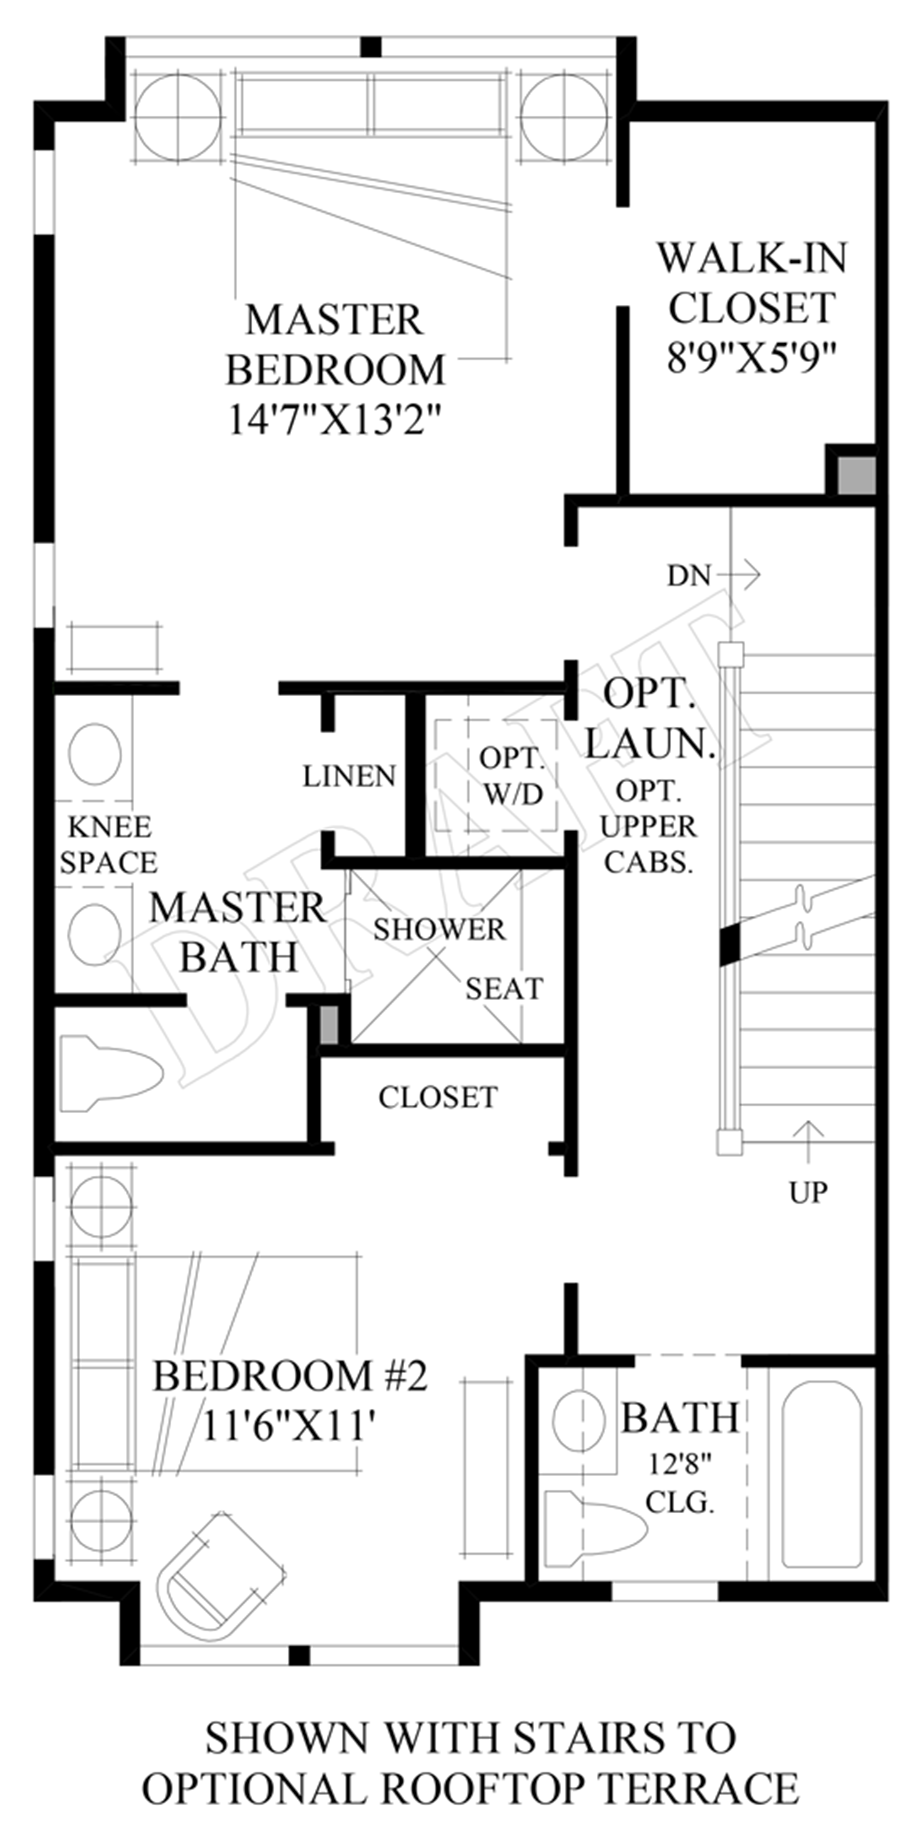 Optional Stairs to Rooftop Terrace Floor Plan